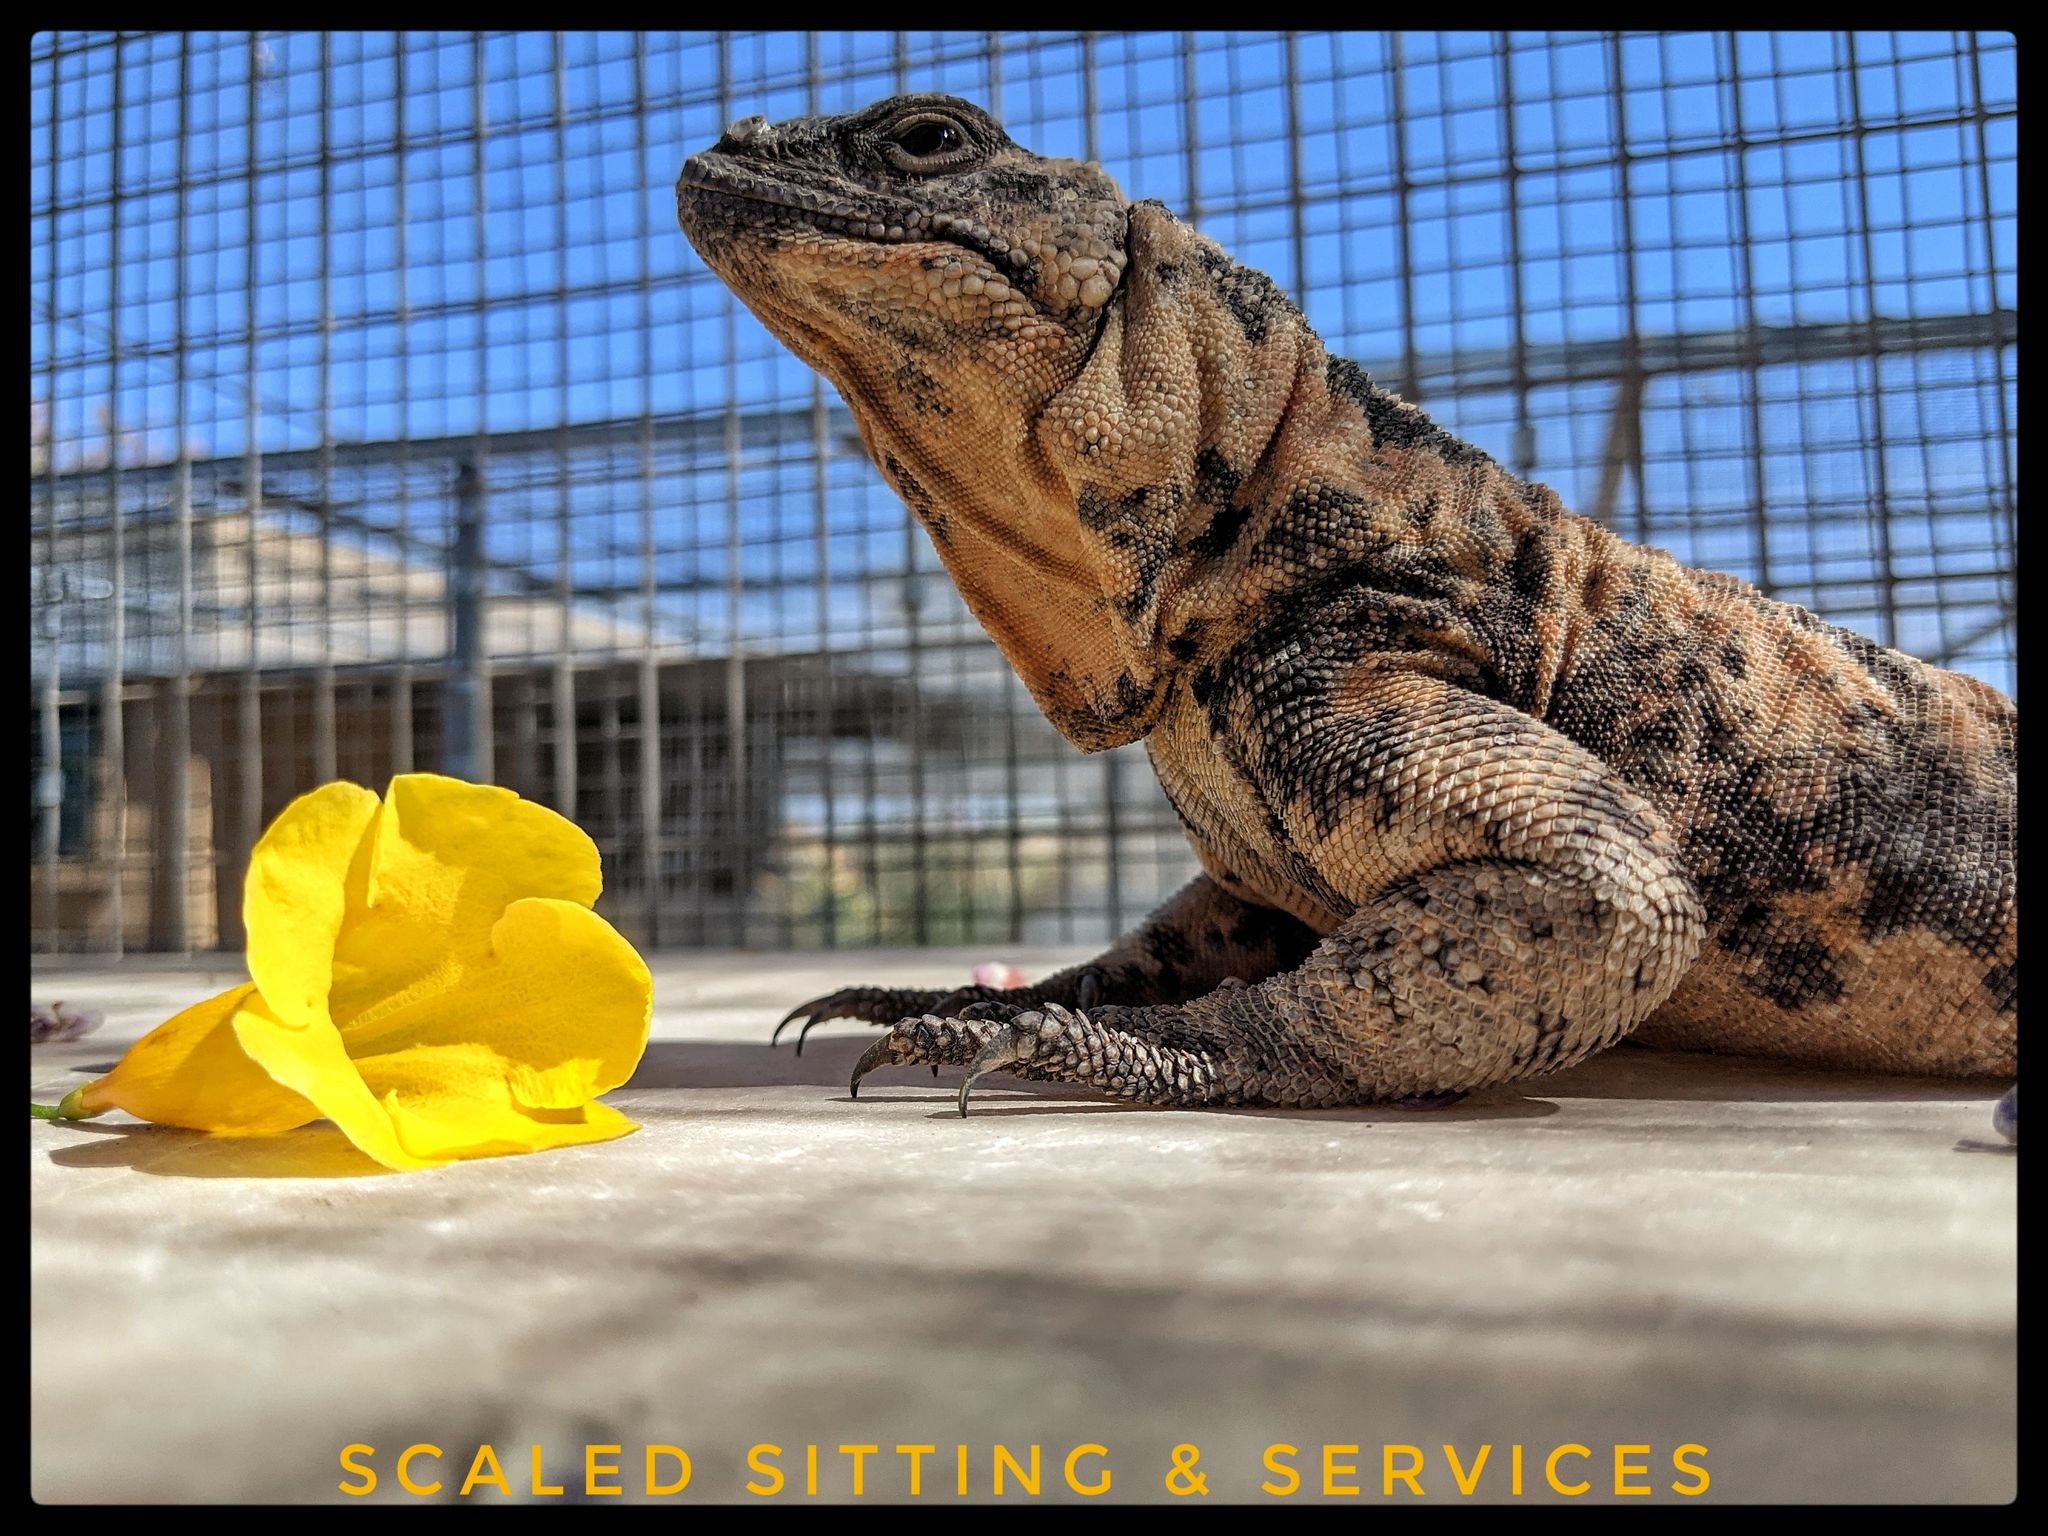 orange and grey chuckwalla with yellow flower in foreground, blue sky background